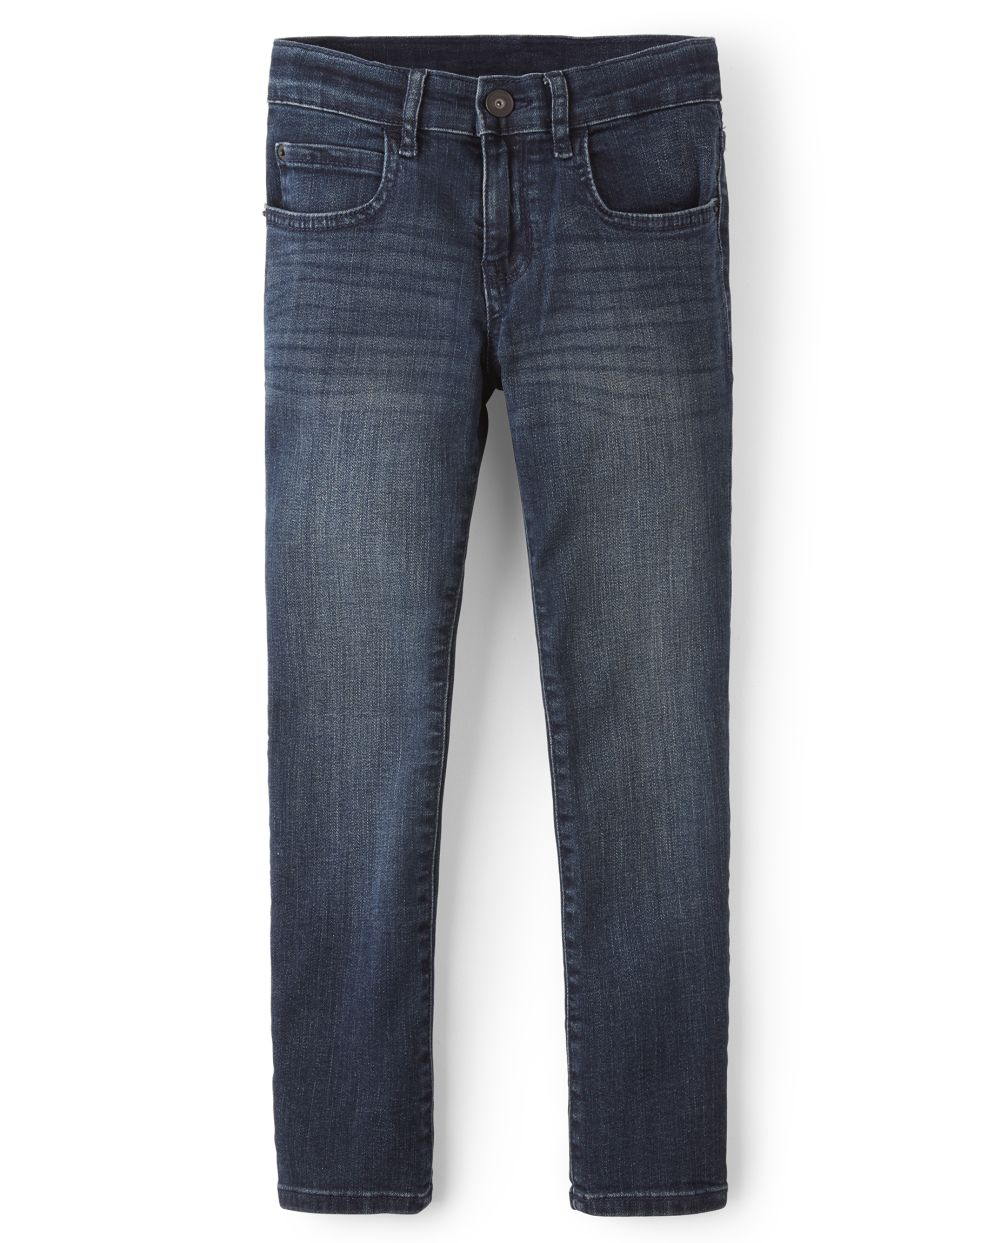 Boys Stretch Super Skinny Jeans